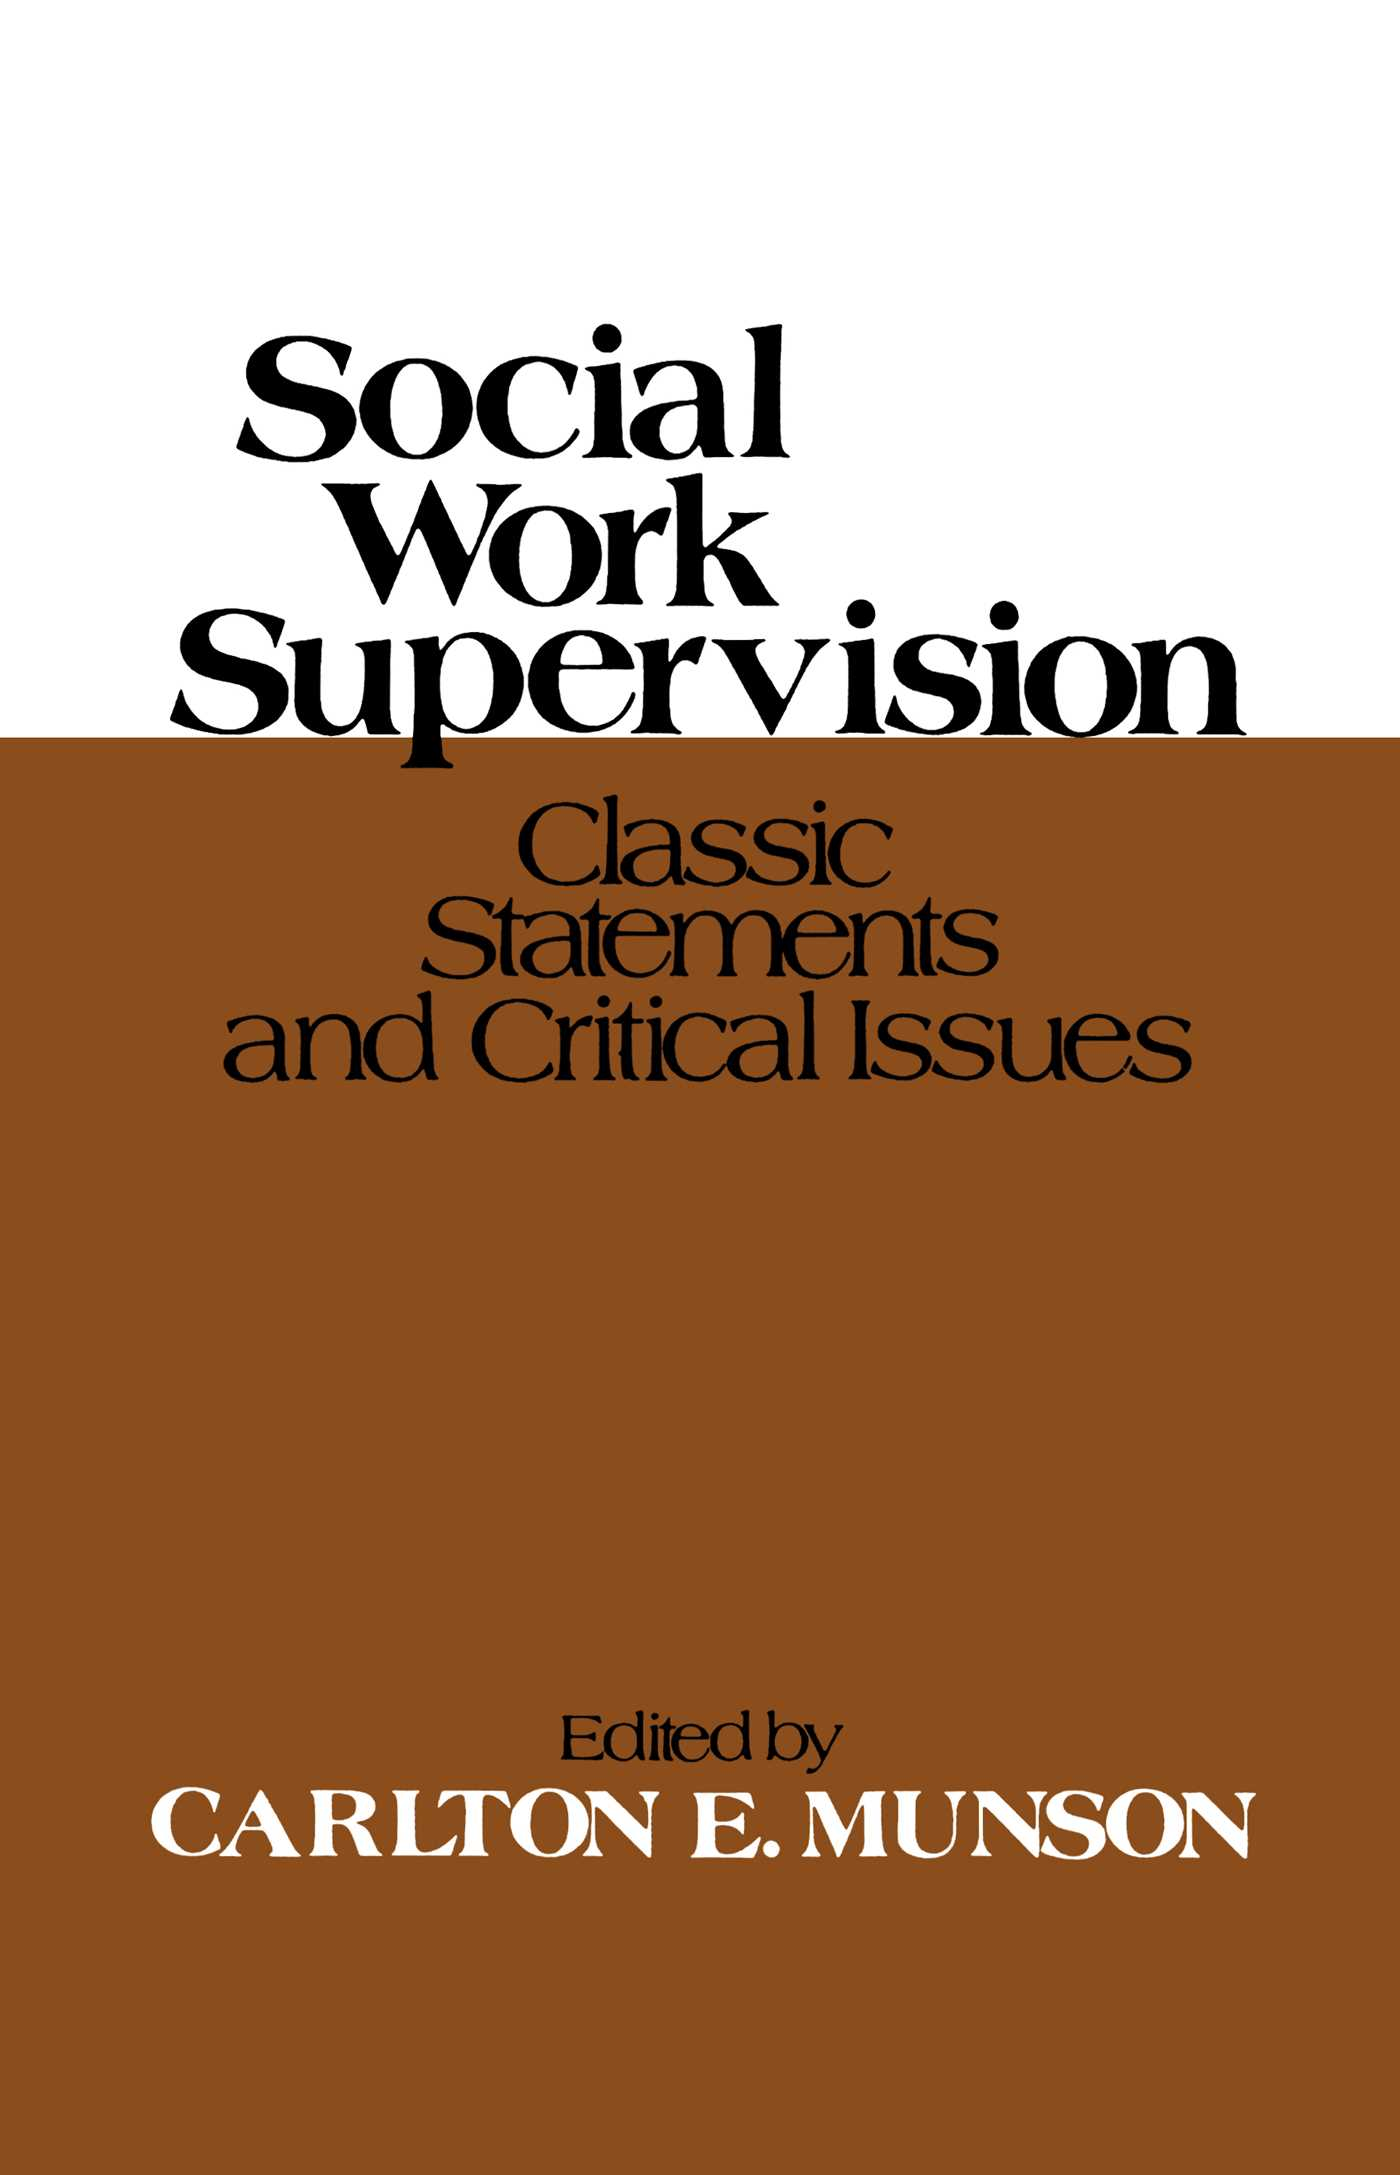 an overview of the social science fiction in asimovs work Social sciences shop by category social work criminology linguistics library & information science summary of enlightenment now.